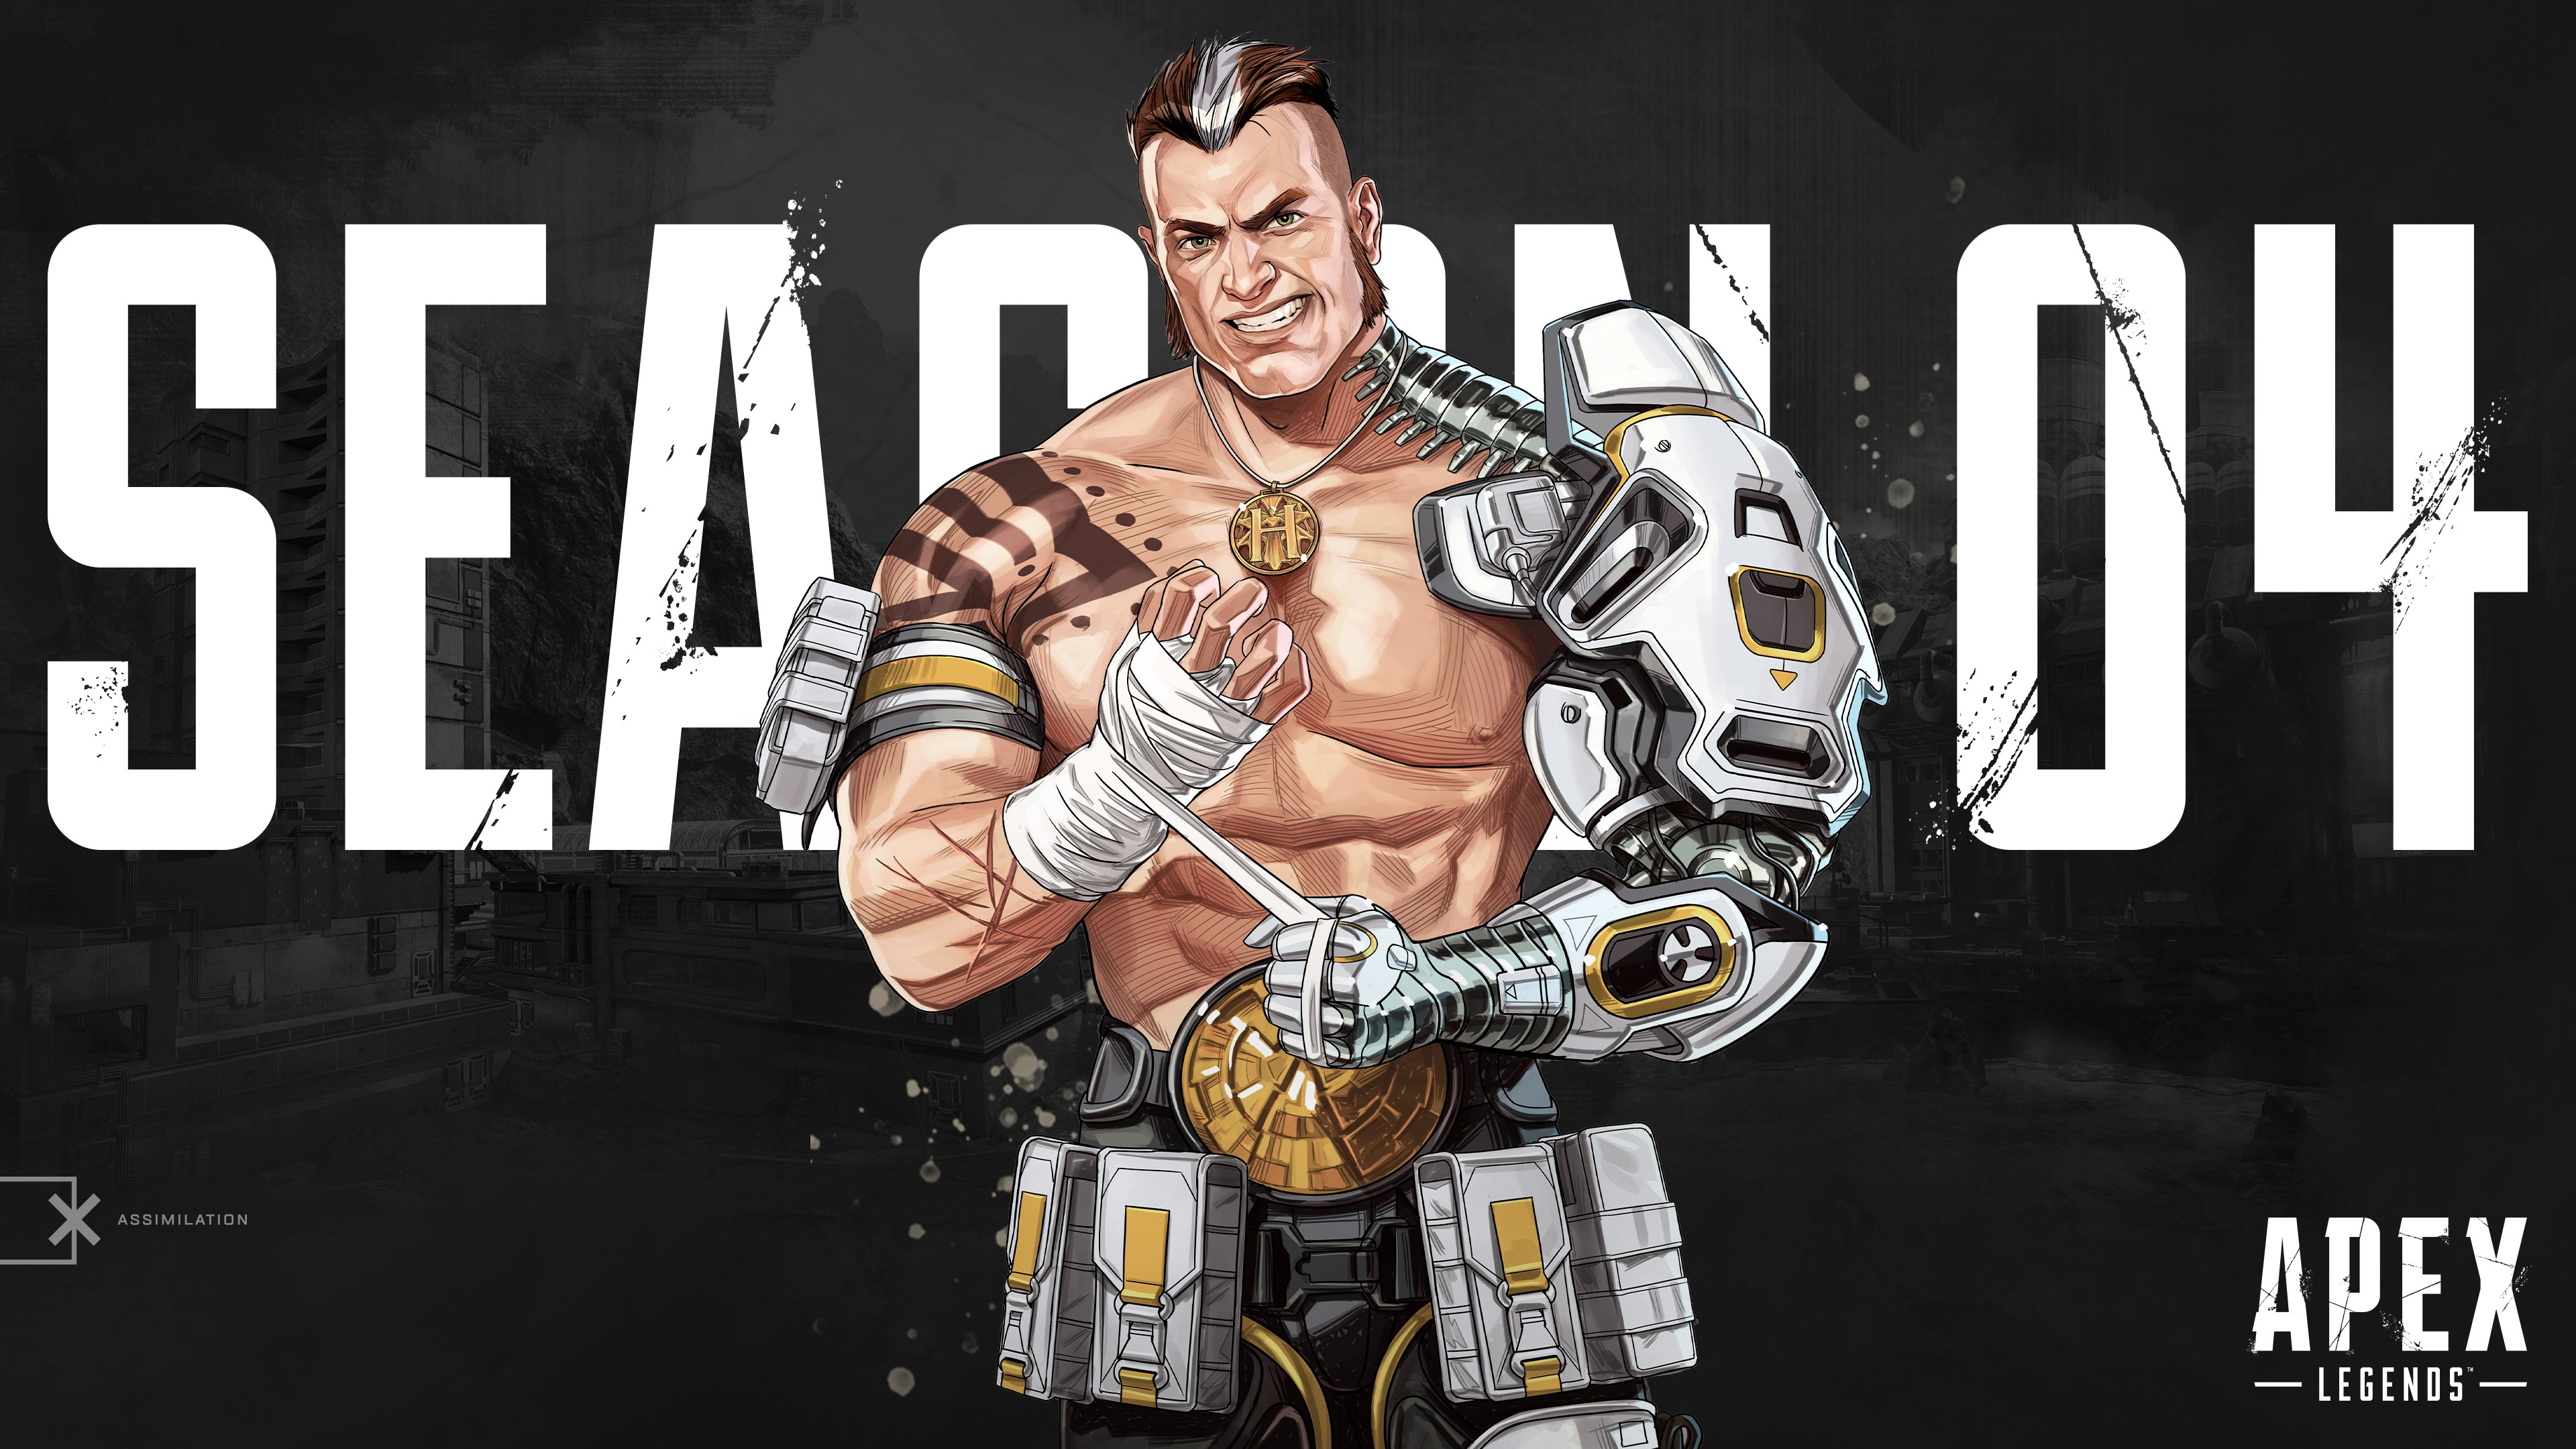 Apex Legends season 4 adds new character Forge, starts February